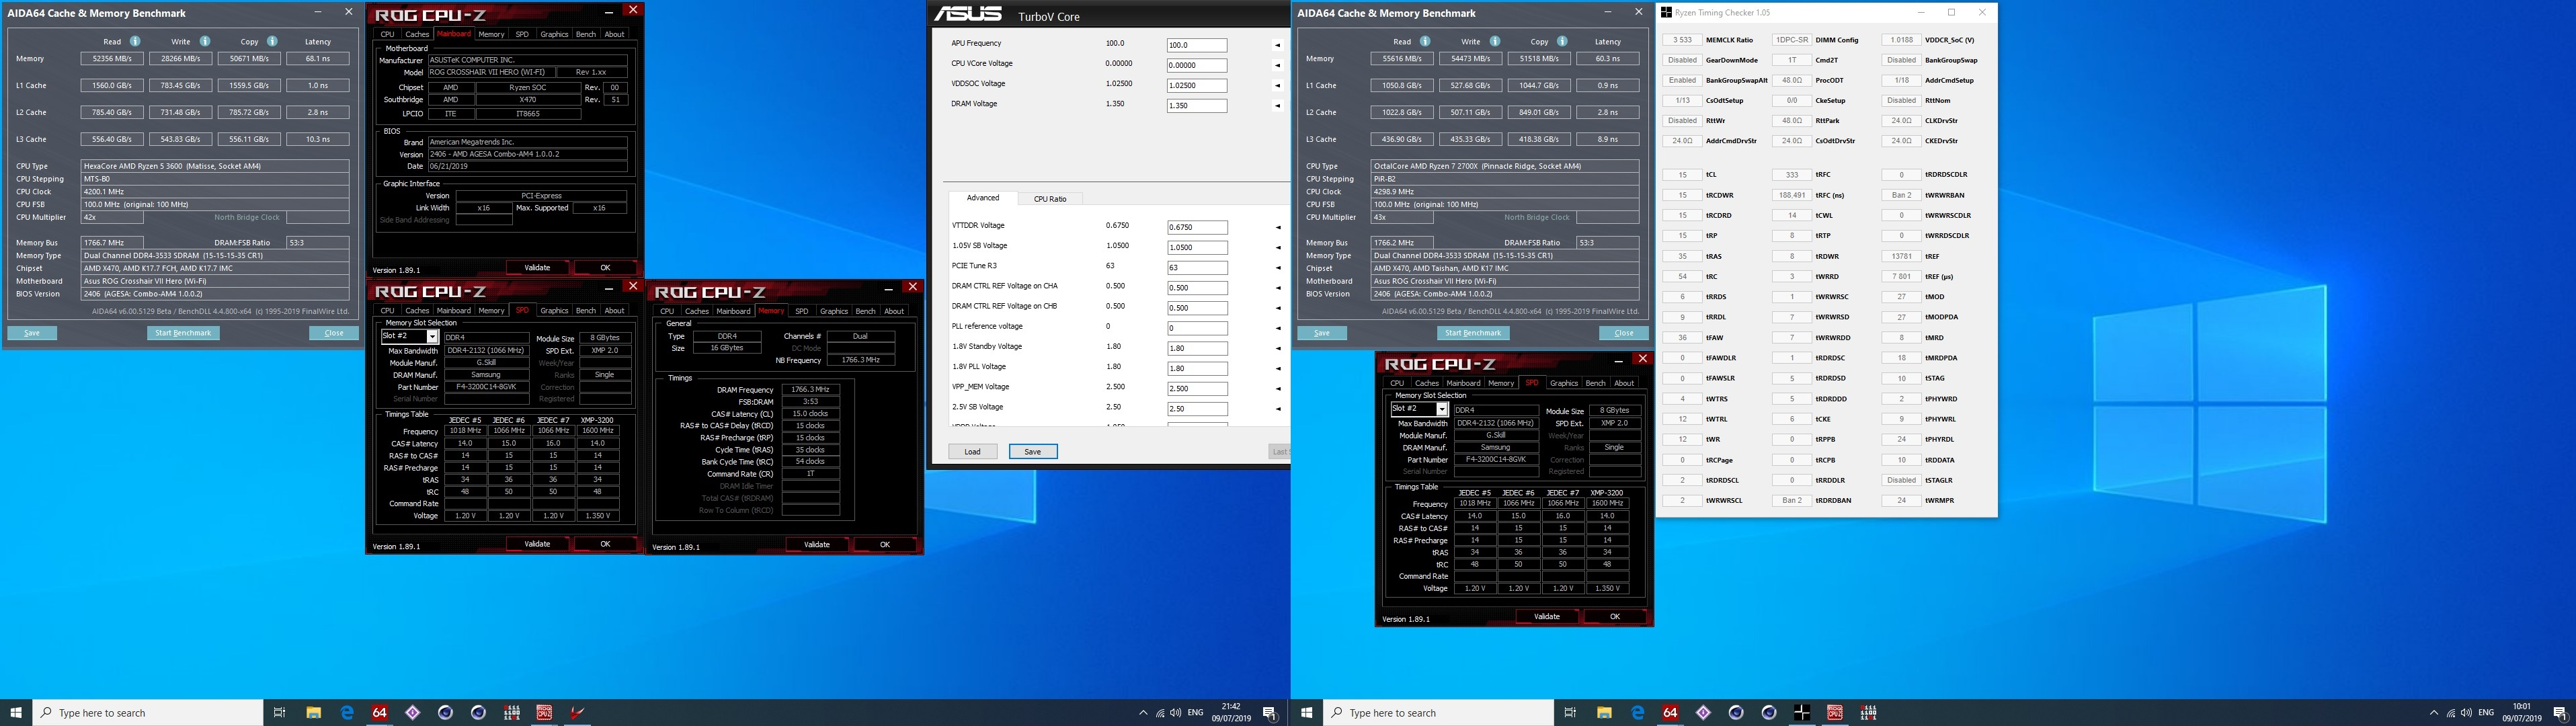 Click image for larger version  Name:R5 3600 vs 2700X 3533S AIDA64.jpg Views:94 Size:786.8 KB ID:279008